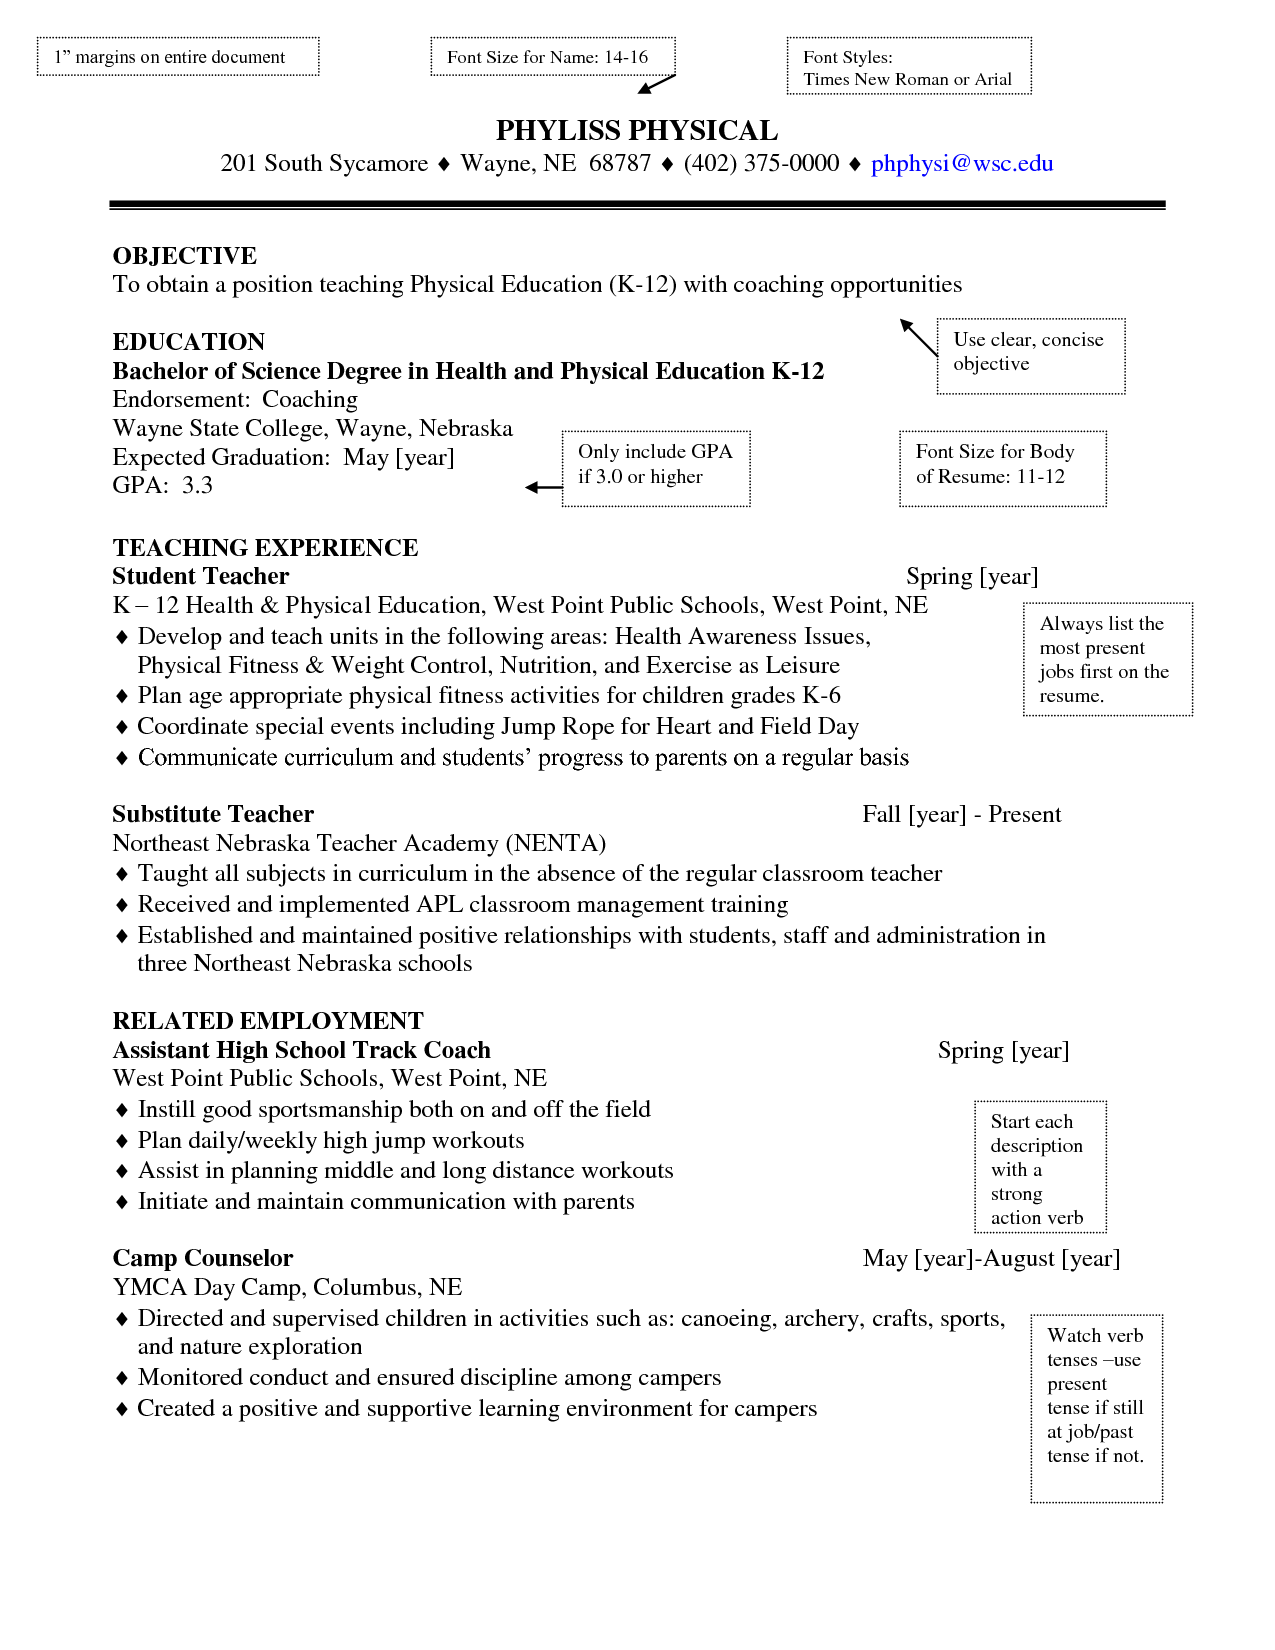 sample special education resumes